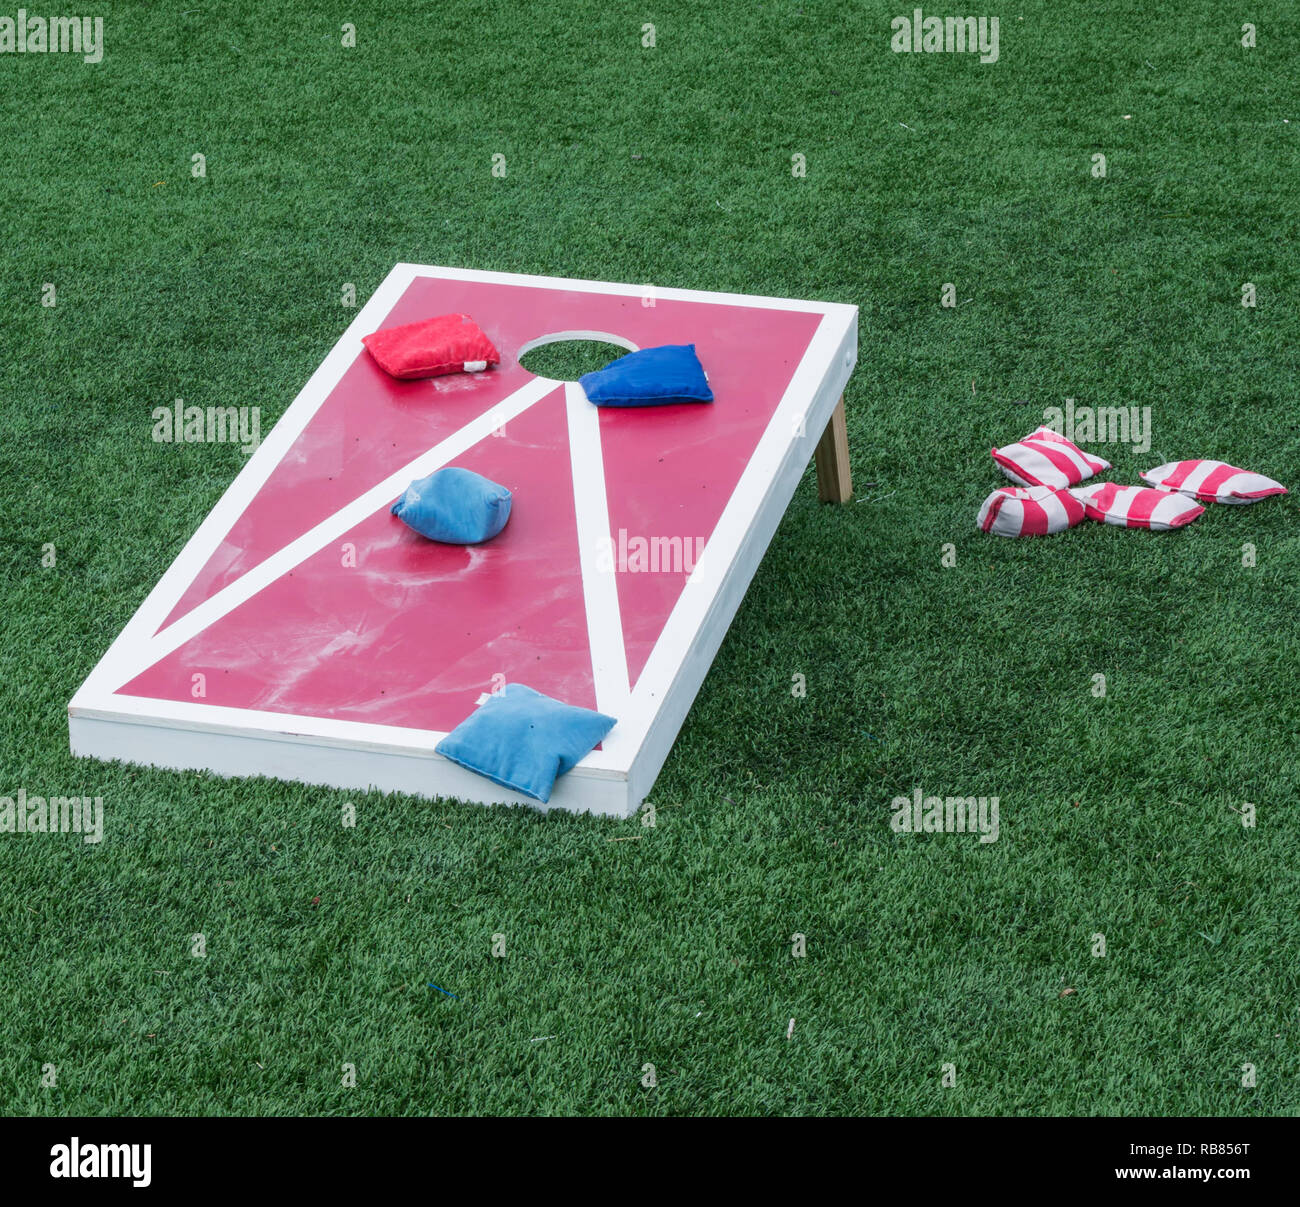 A cornhole board is set up with colorful beanbags resting on it after the competitors have thrown them. - Stock Image